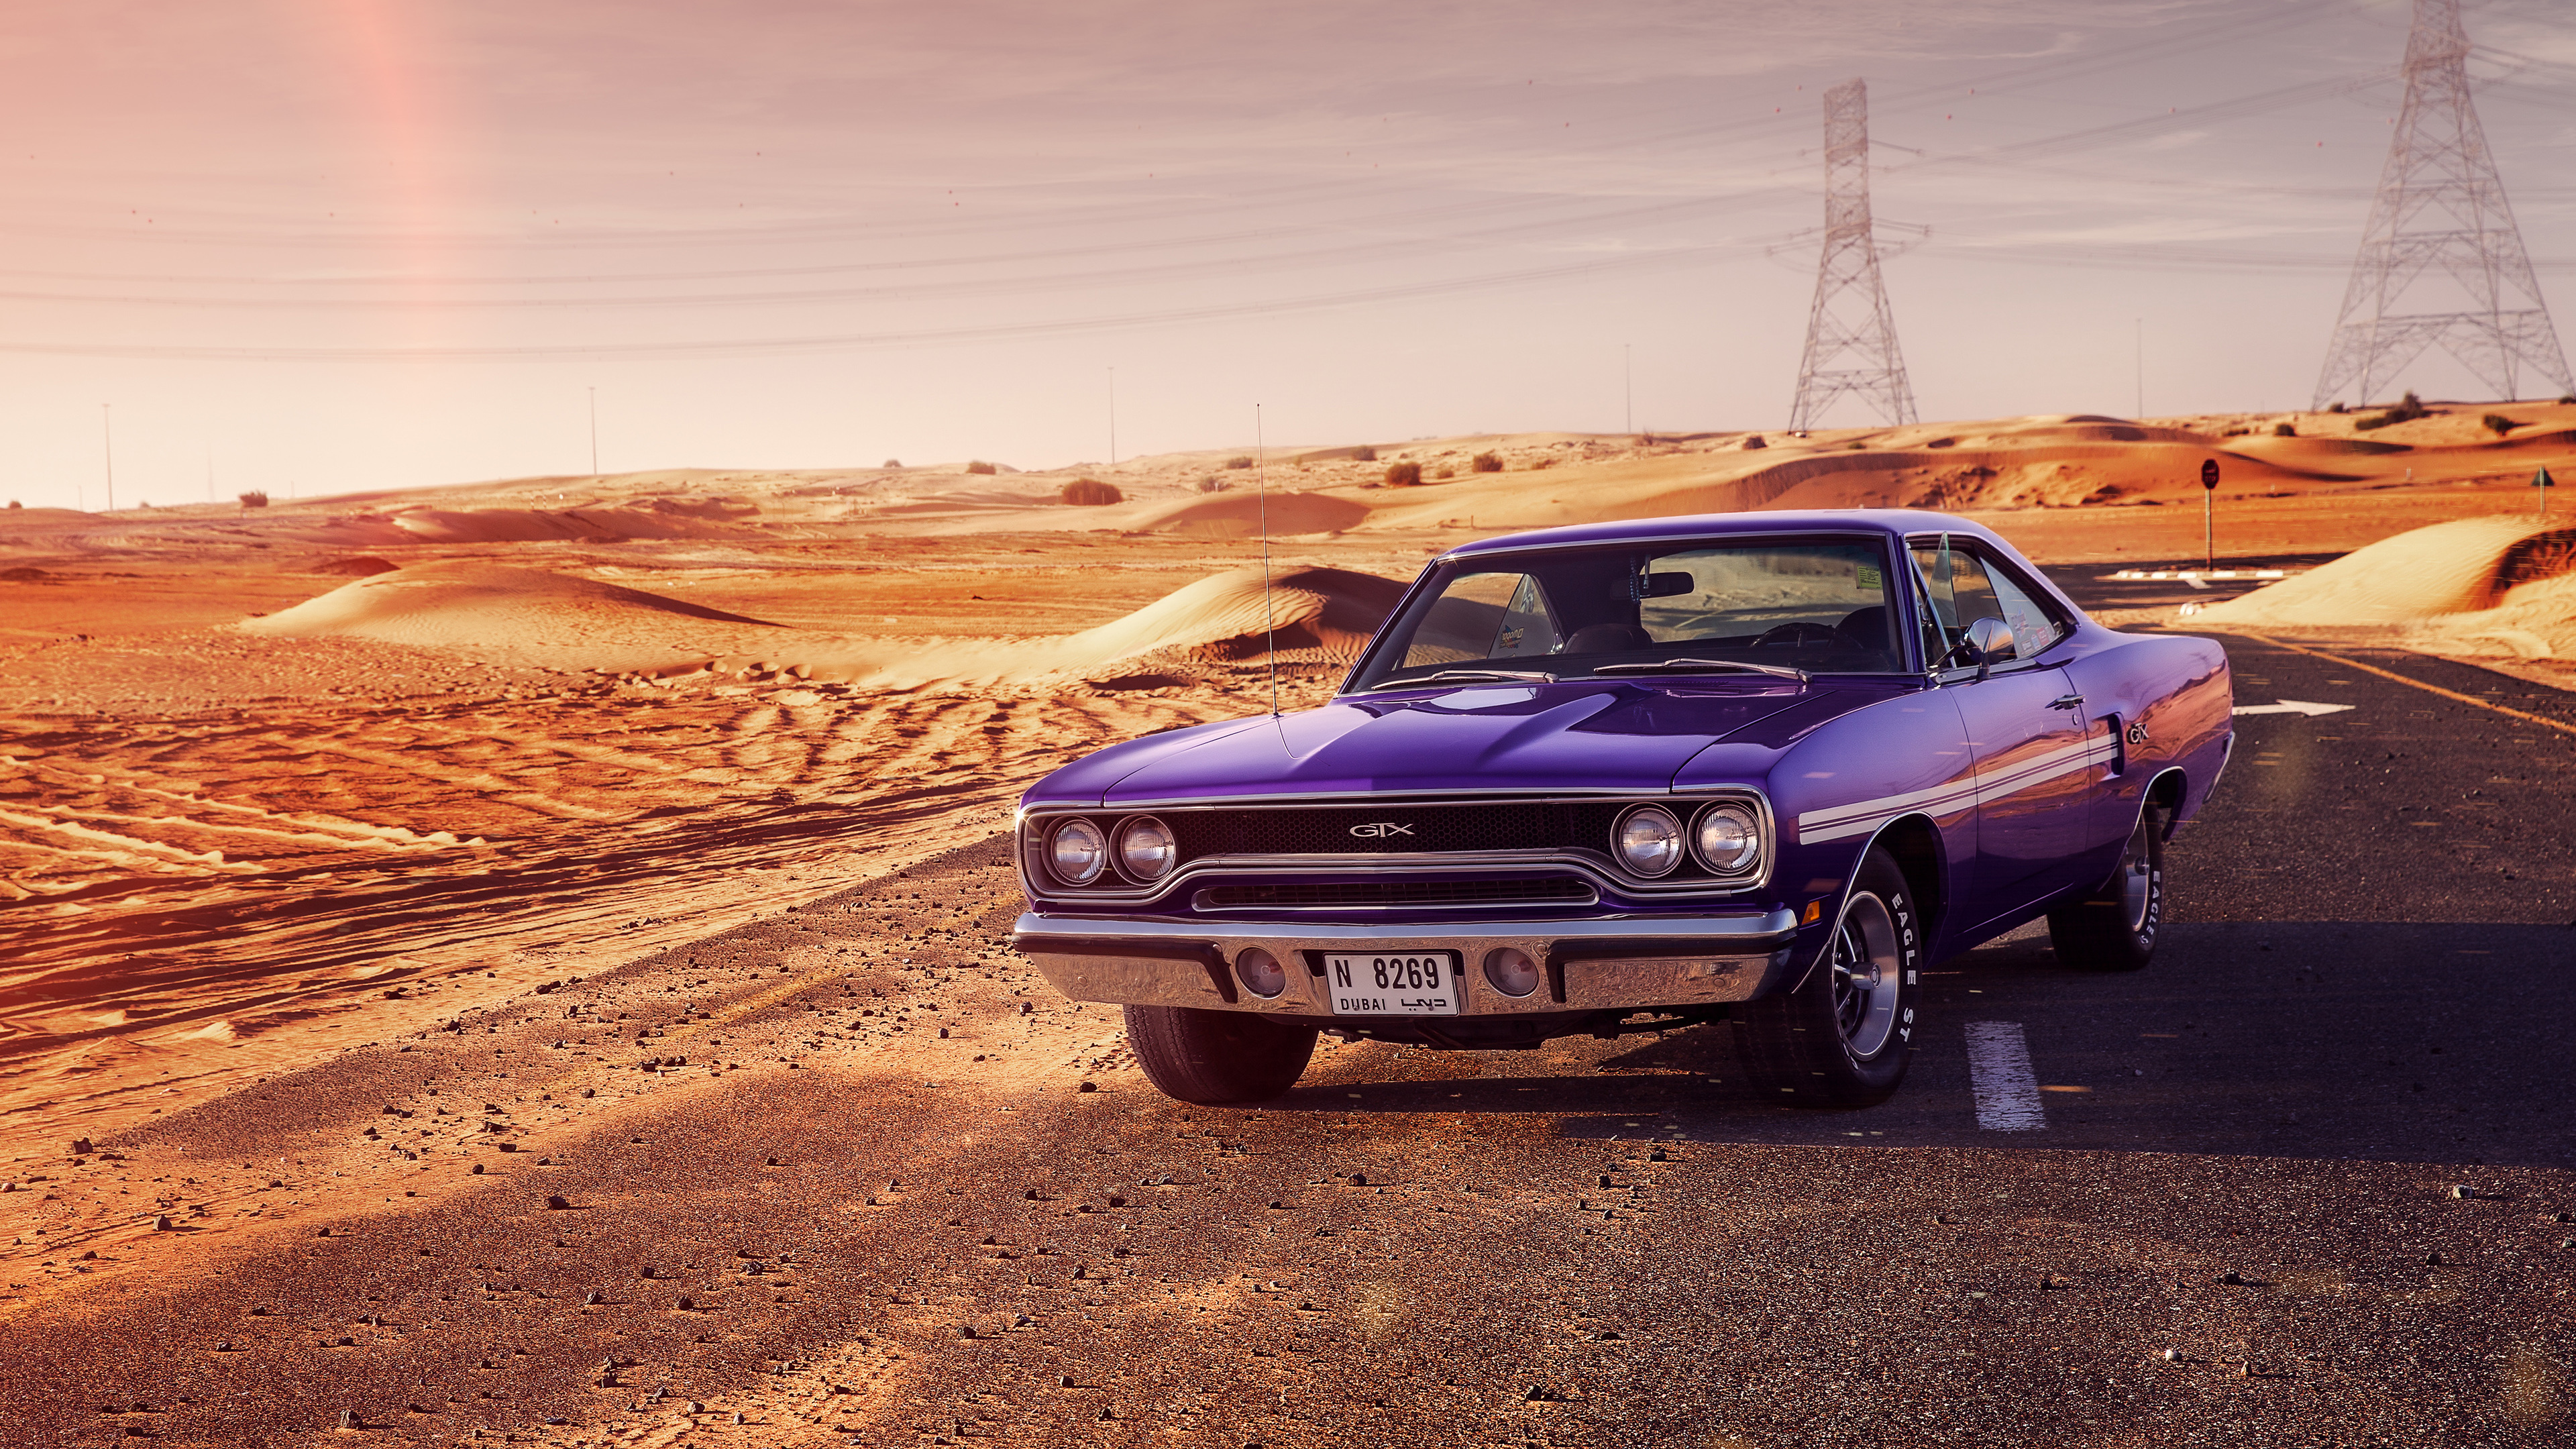 1970 plymouth gtx 1539113850 - 1970 PLYMOUTH GTX - hd-wallpapers, cars wallpapers, behance wallpapers, artist wallpapers, 4k-wallpapers